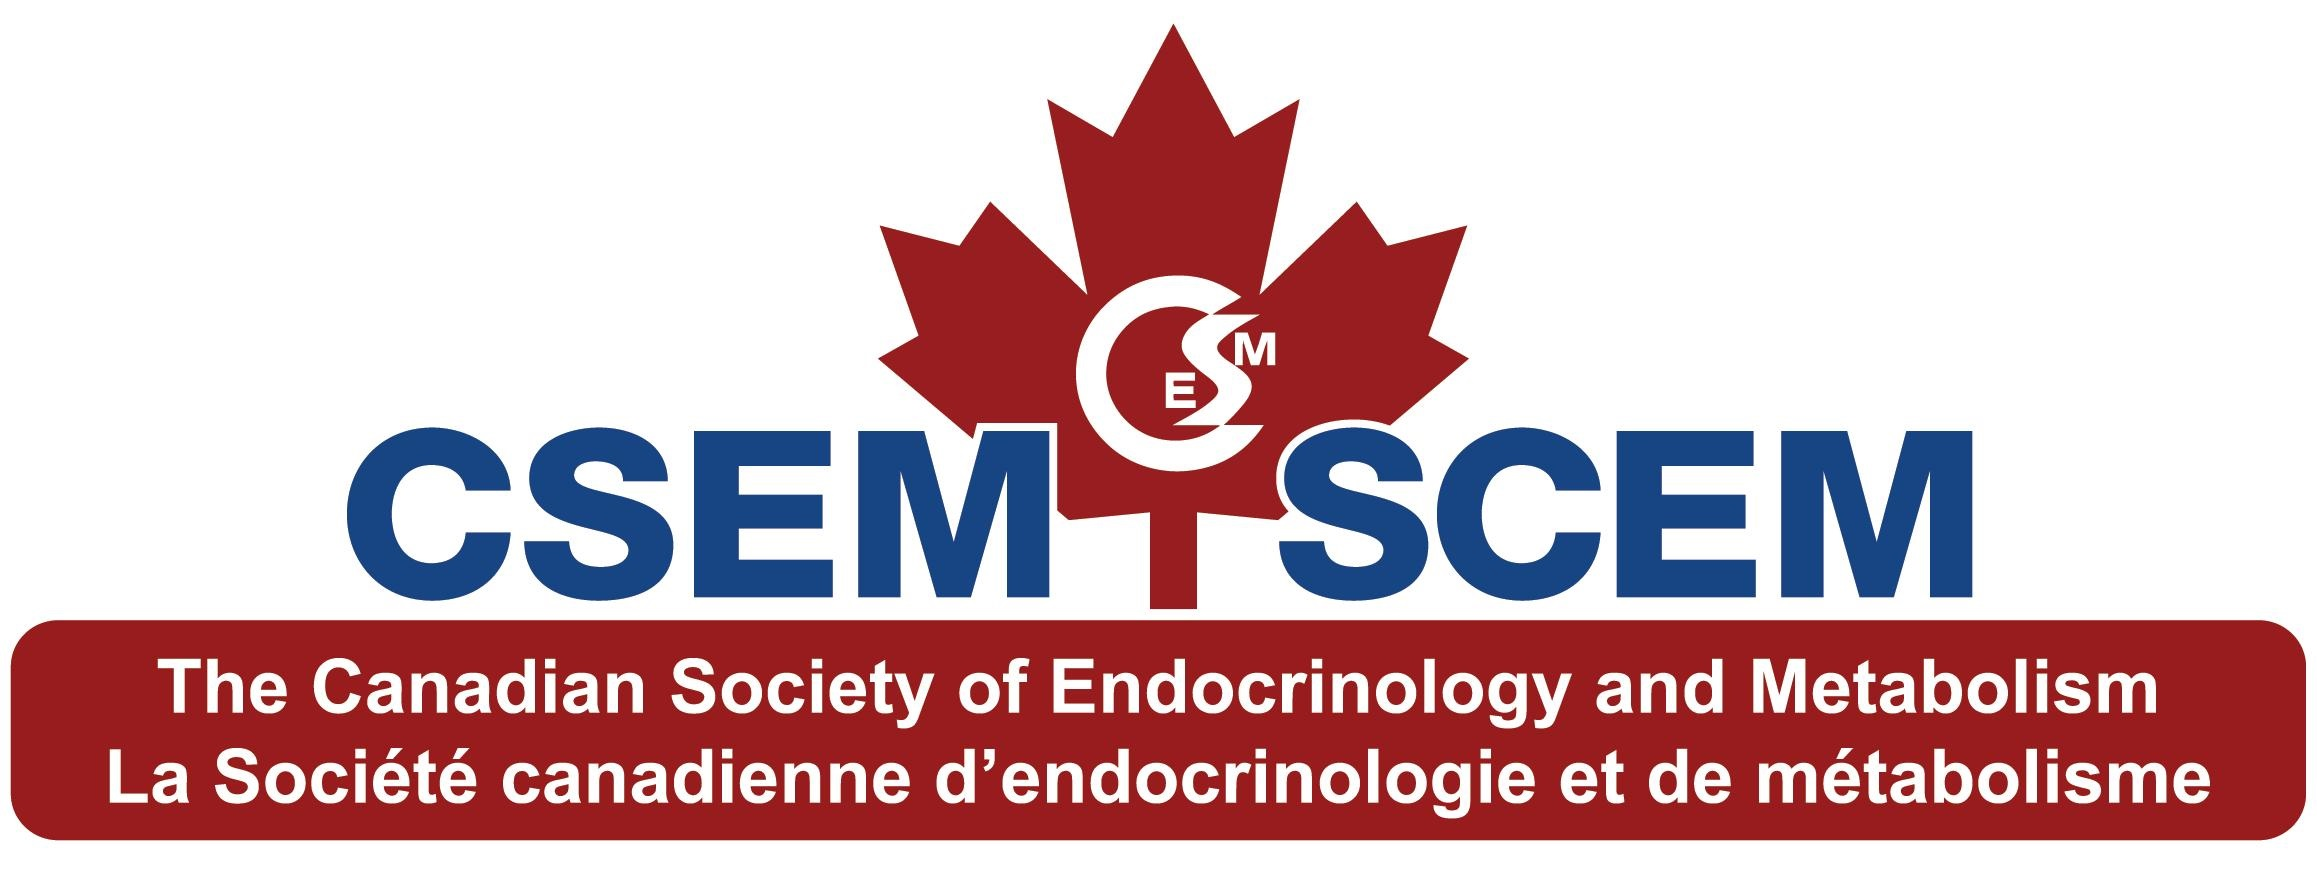 Canadian Society of Endocrinology and Metabolism